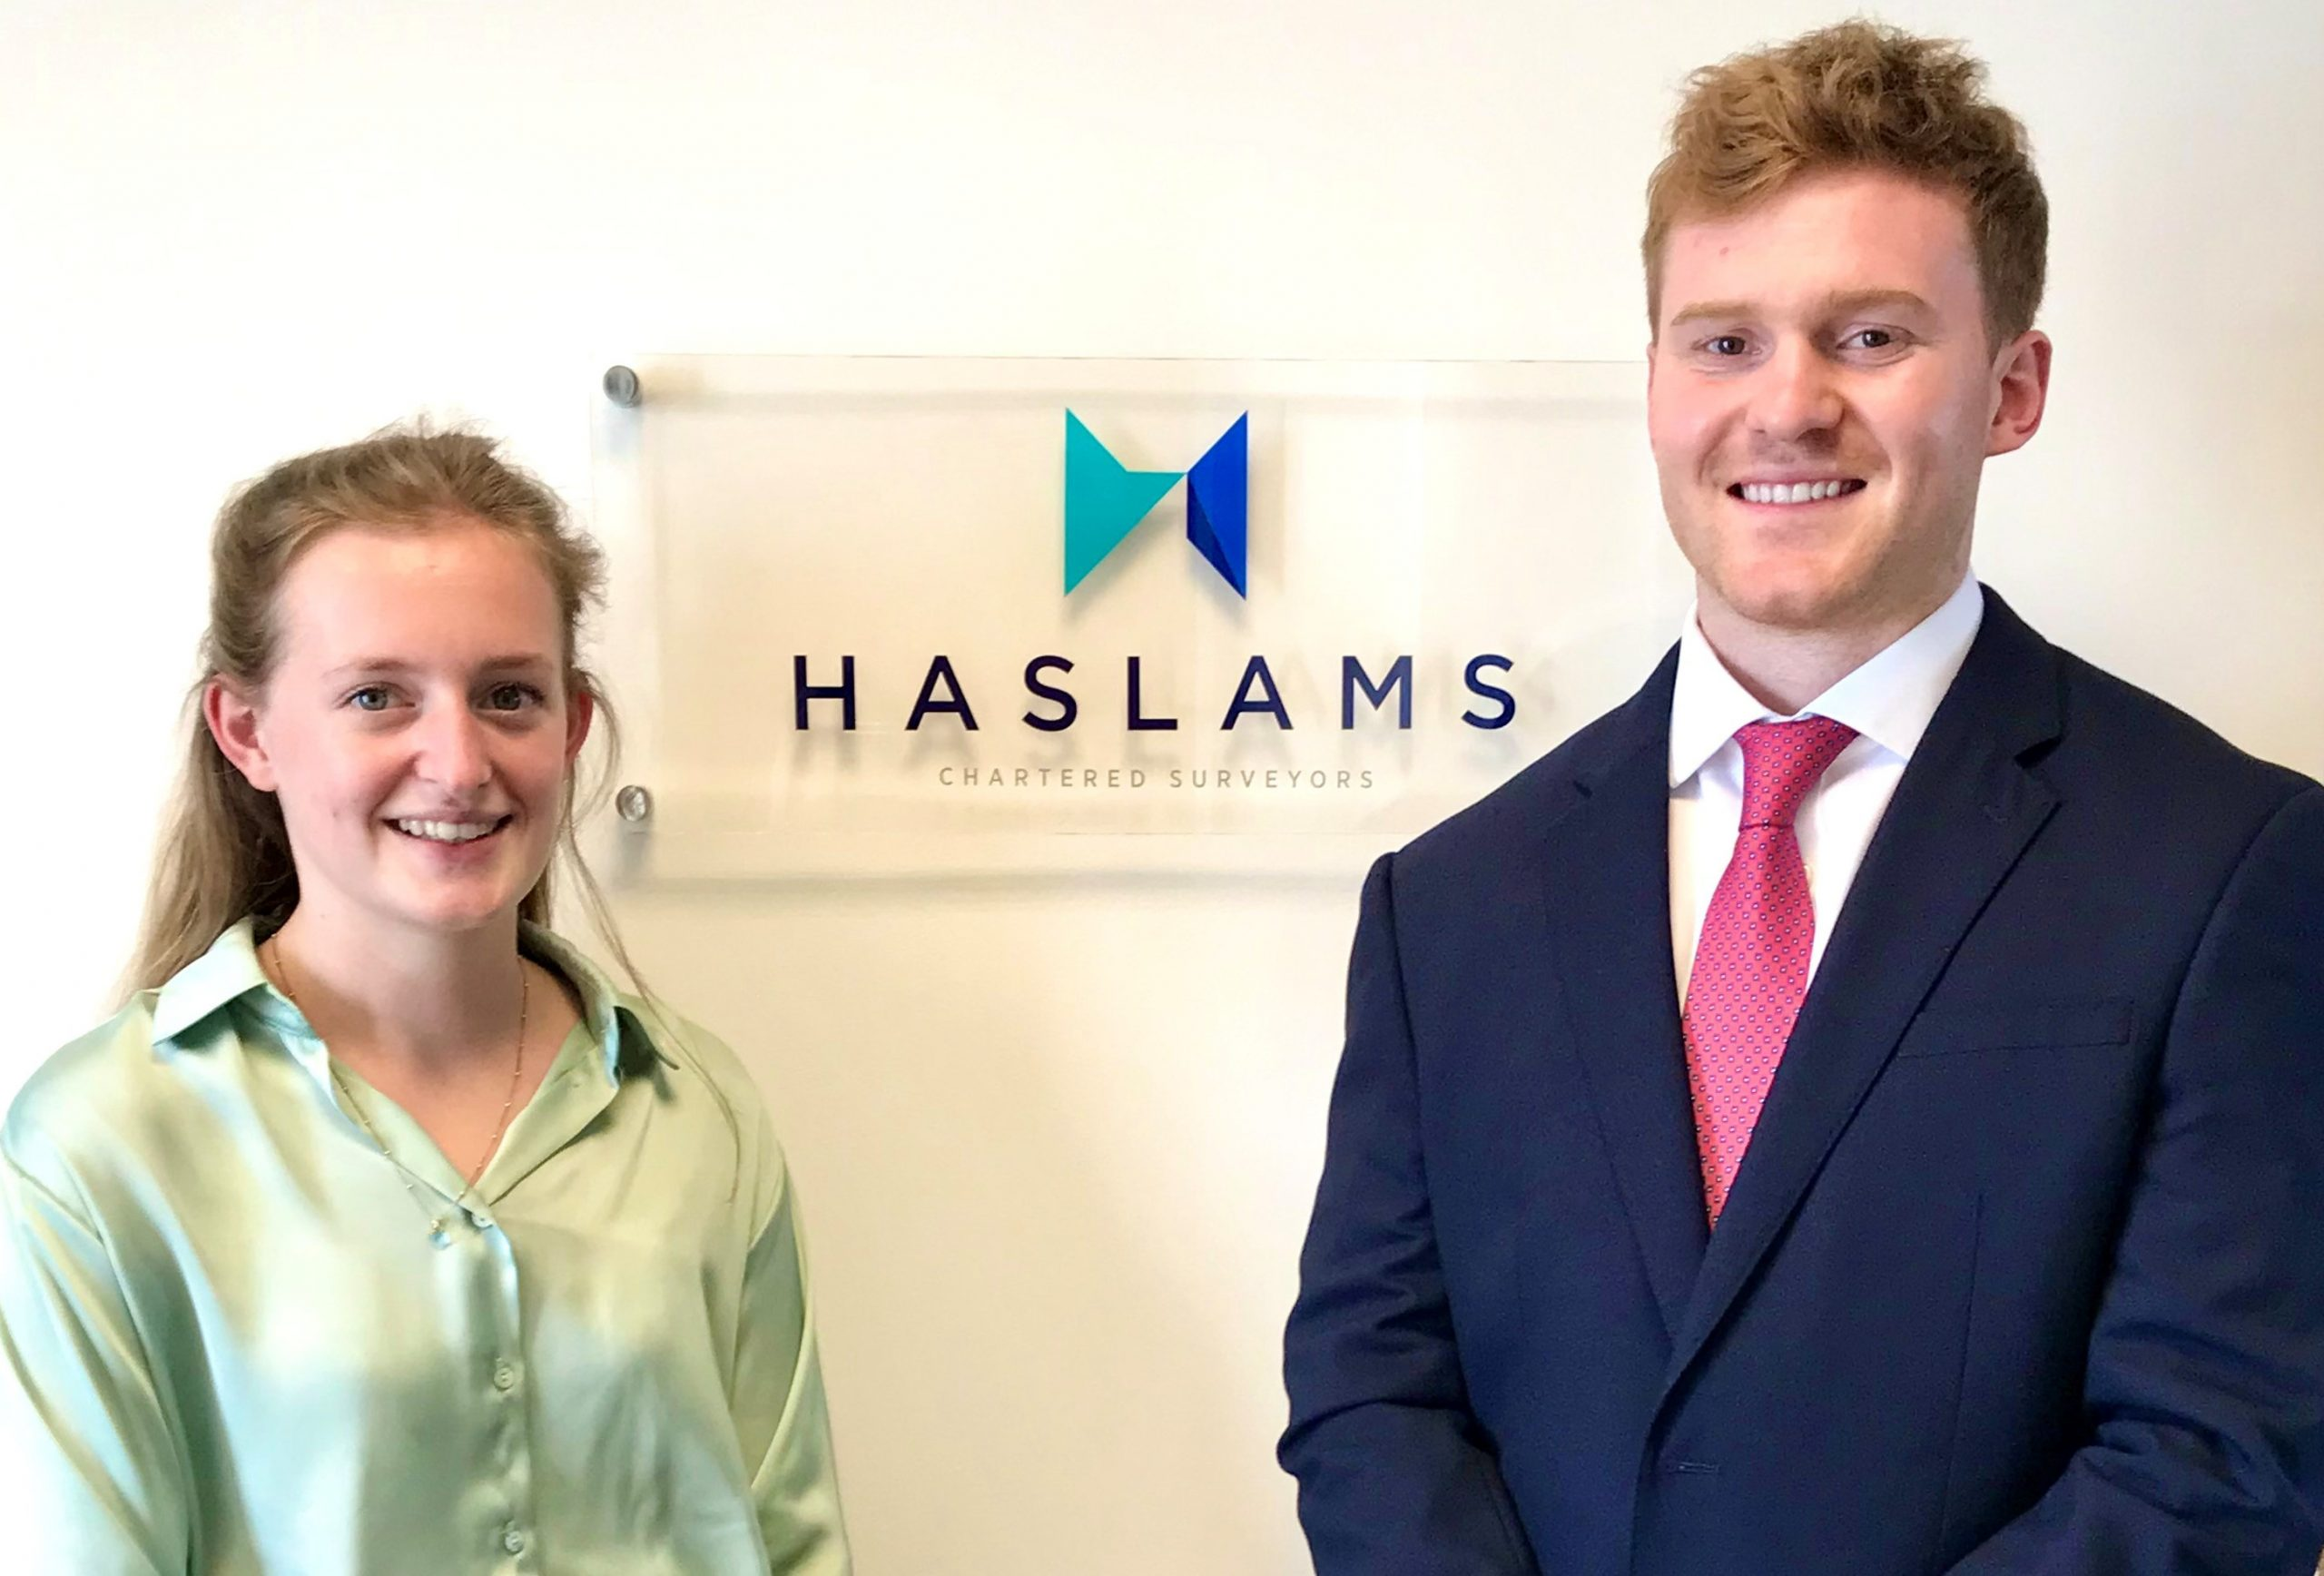 Haslams' Expands its Team